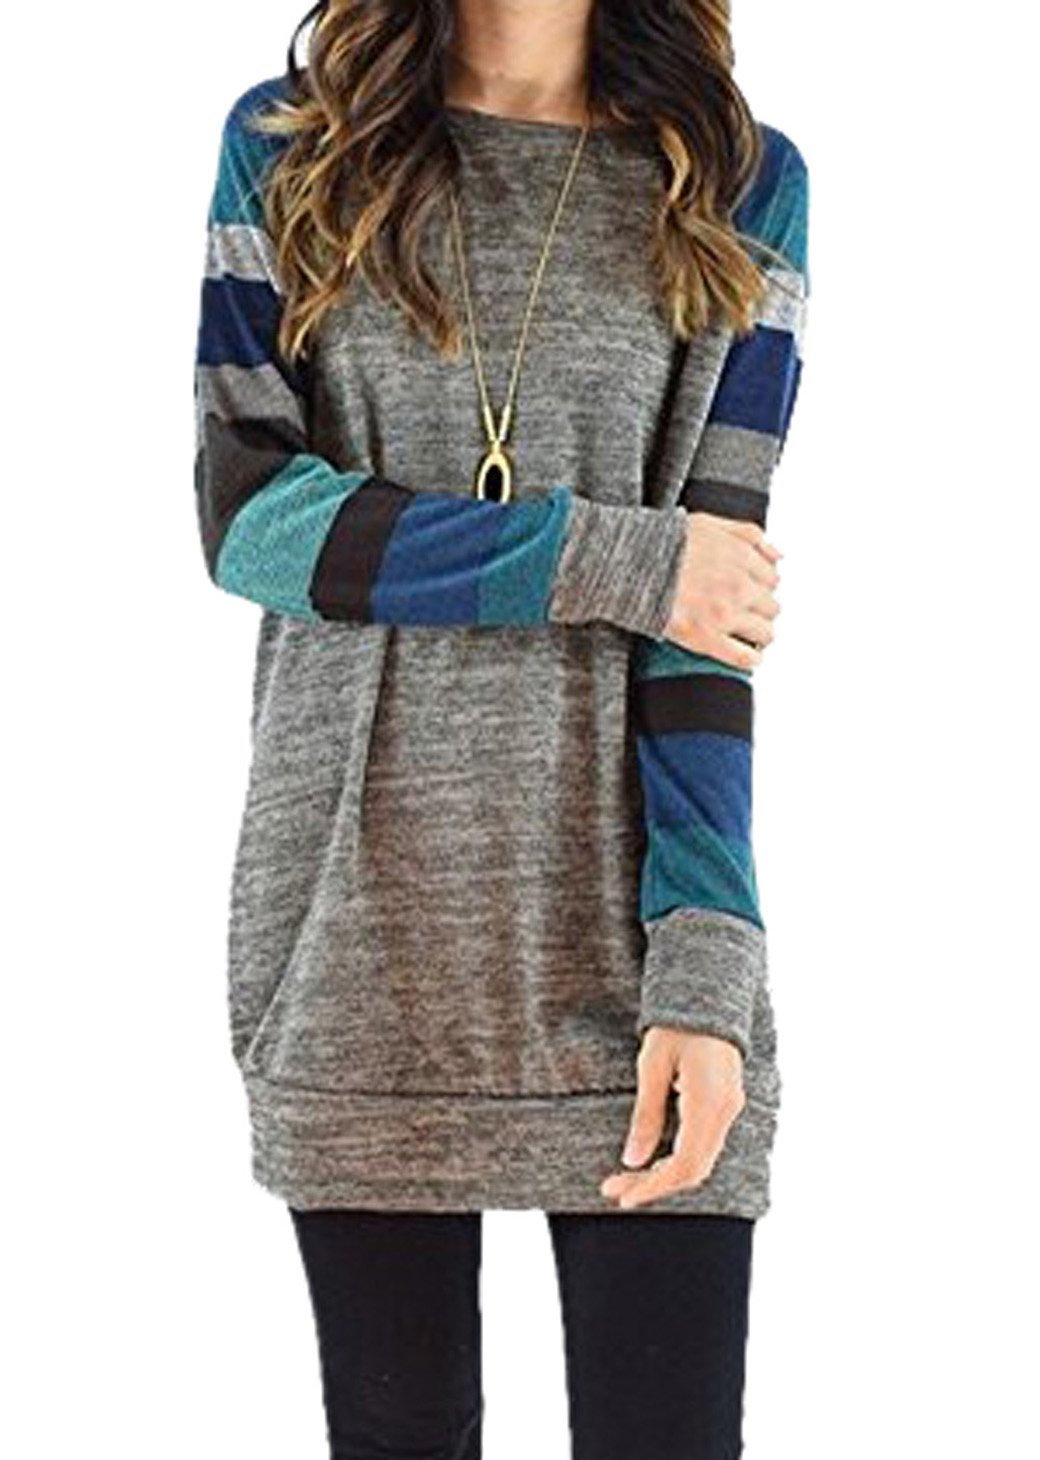 Tomlyws Womens Casual Cotton Knitted Stripes Blue Long Sleeve Lightweight Tunic Sweatshirt Tops Grey S